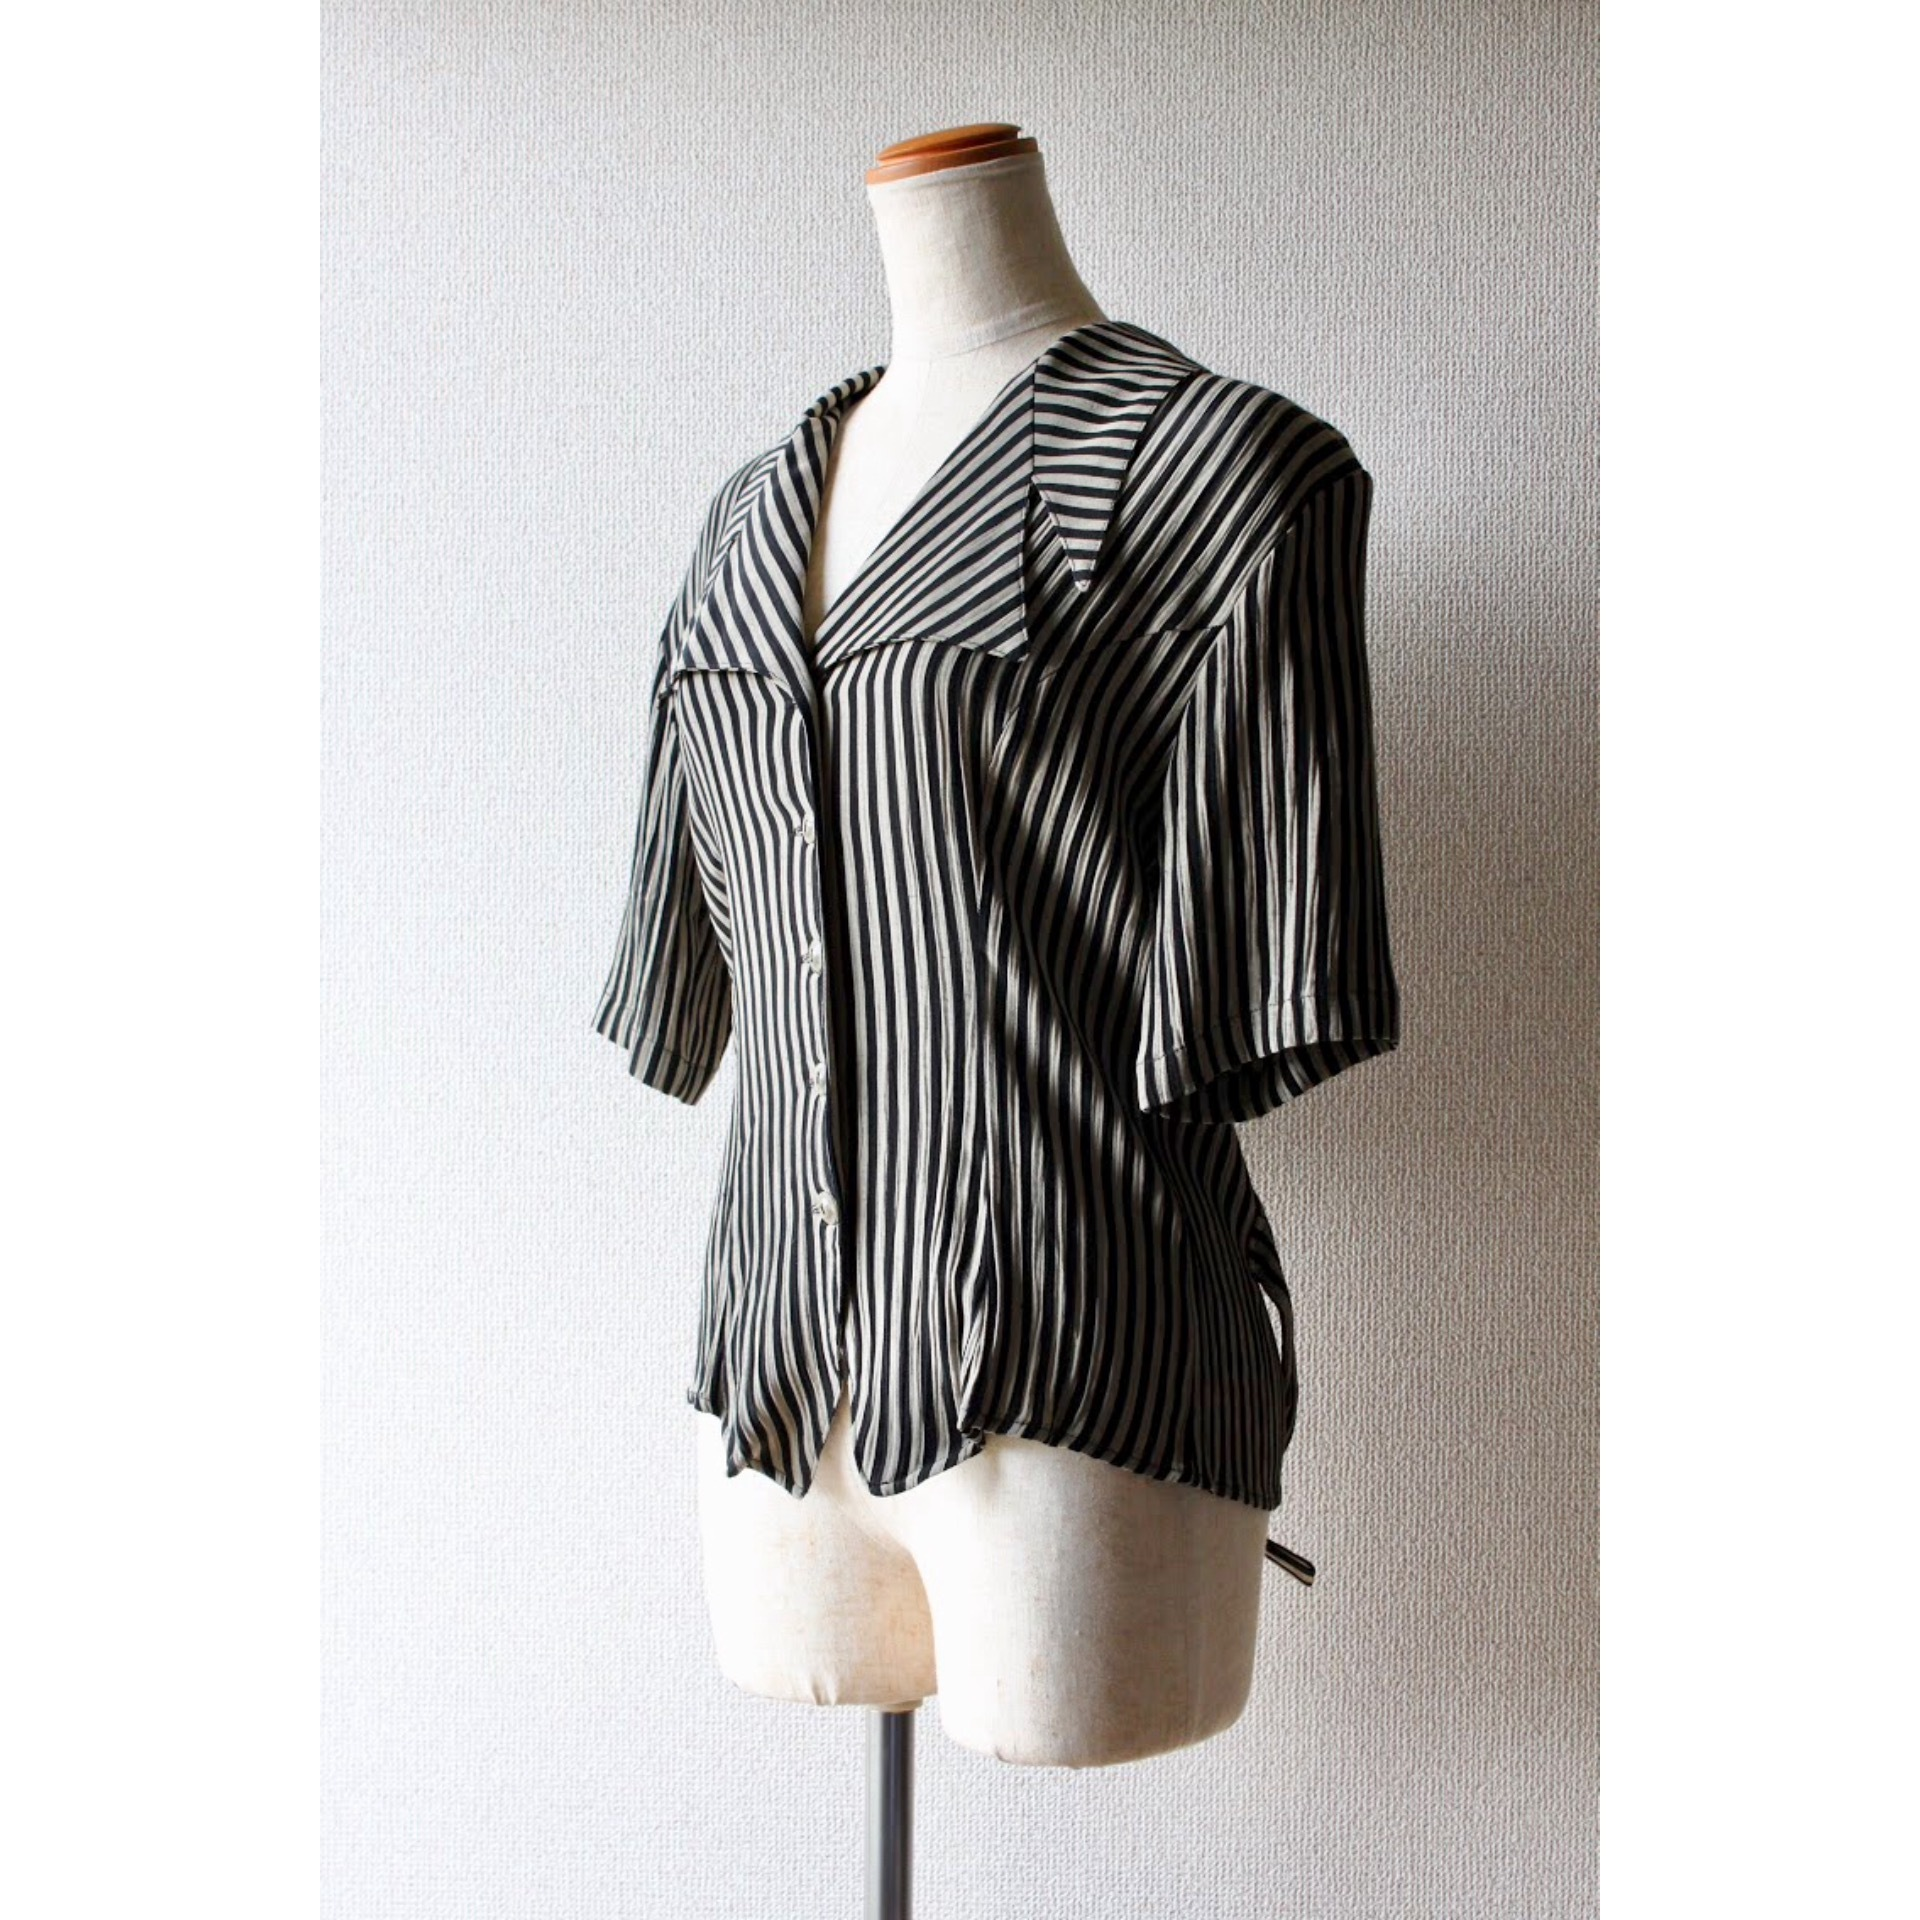 Vintage stripe short sleeve shirt